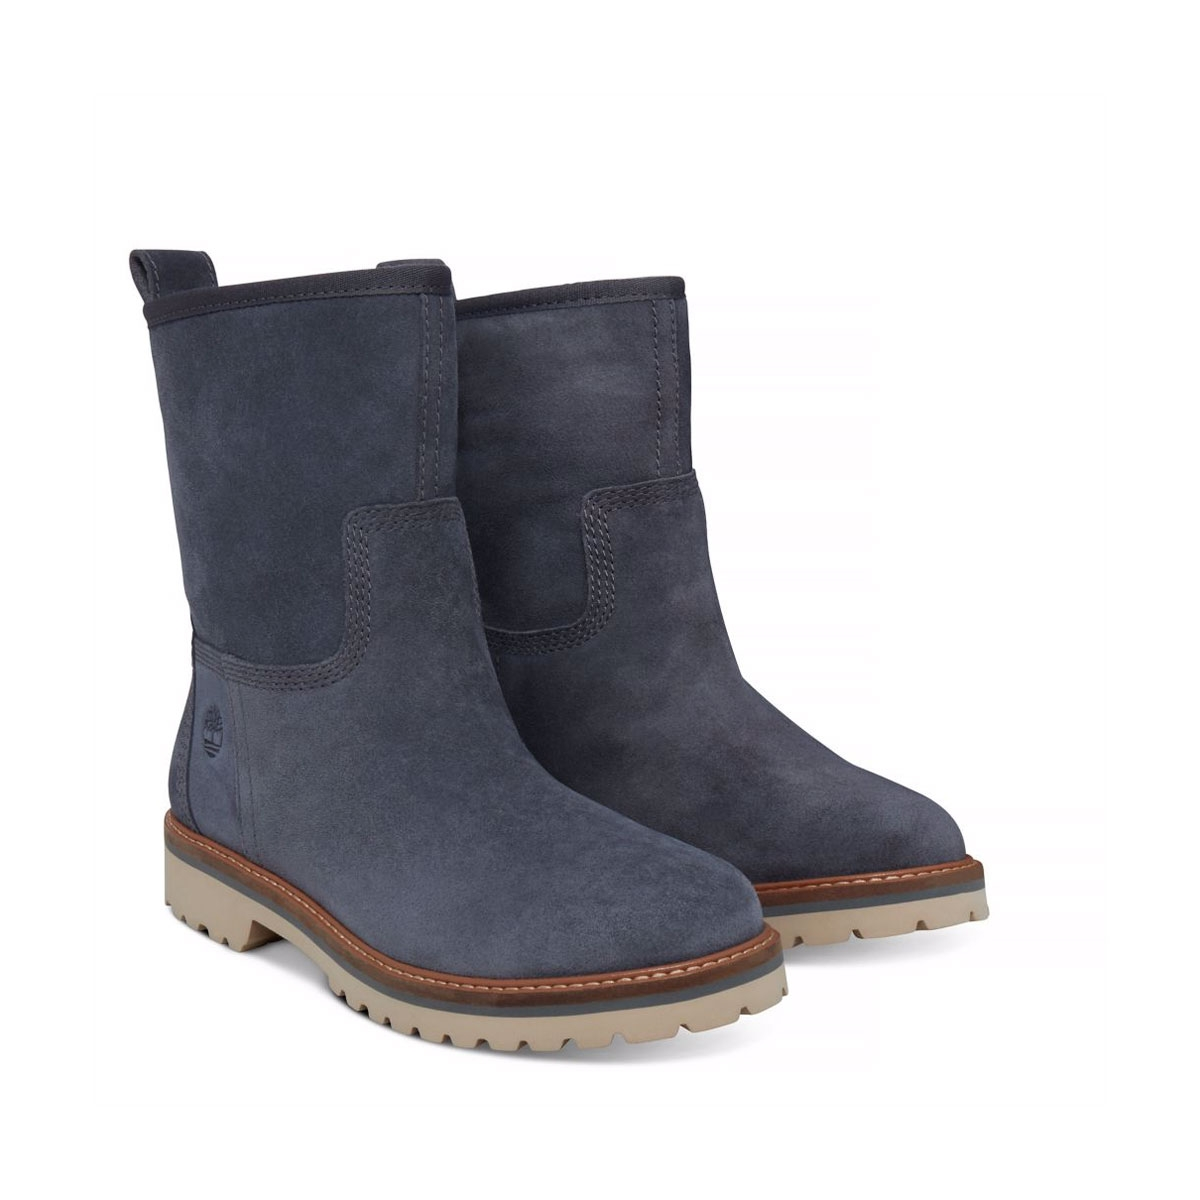 0affa5cd45f ... Image of Timberland Chamonix Valley WP Winter Boots (Women s) - Dark  Grey Suede ...